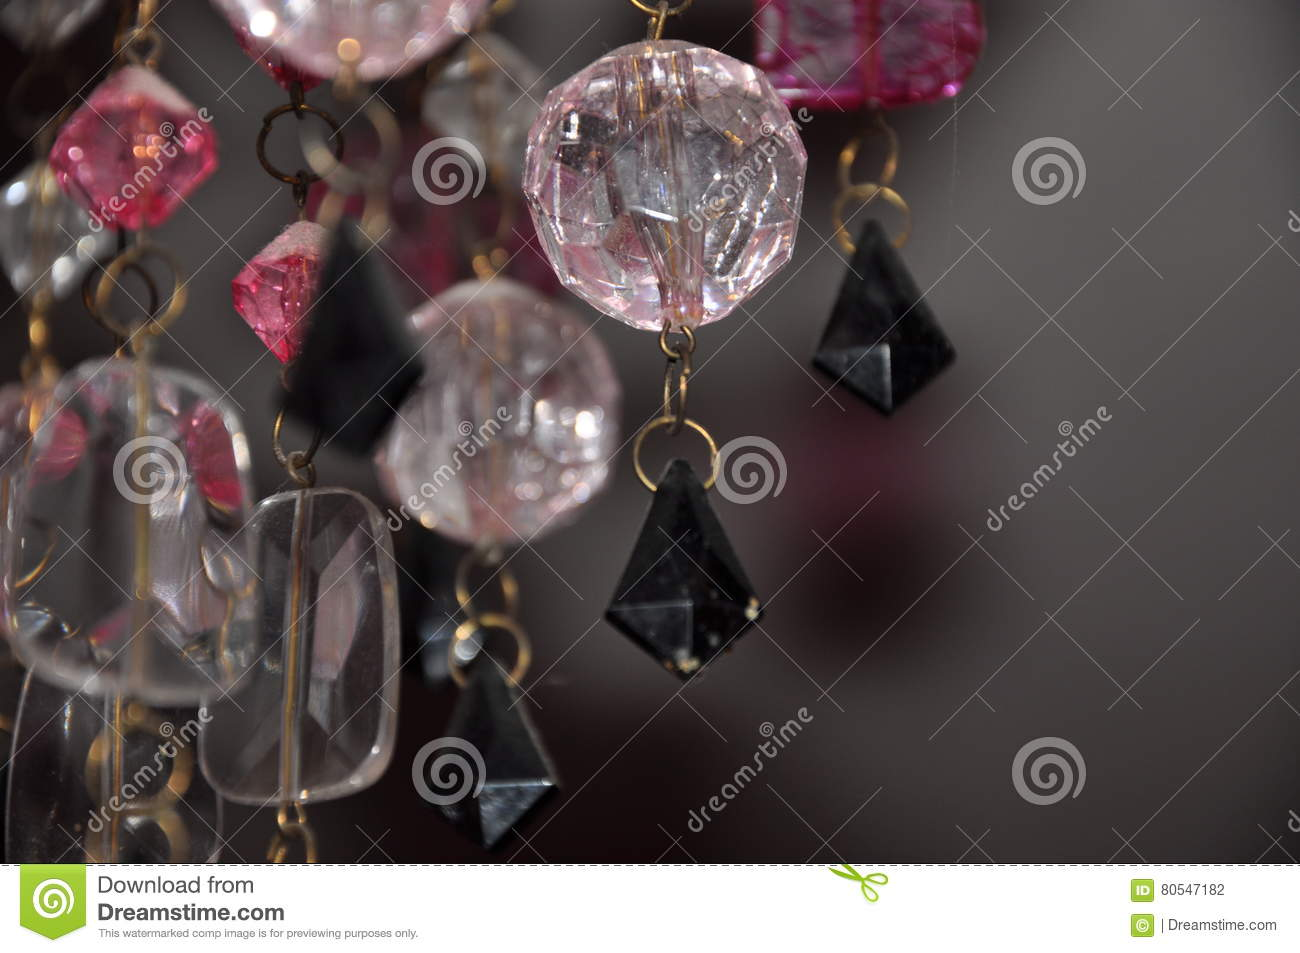 Beautiful Chandelier Crystals Background Stock Photo Image Of - Chandelier crystals pink